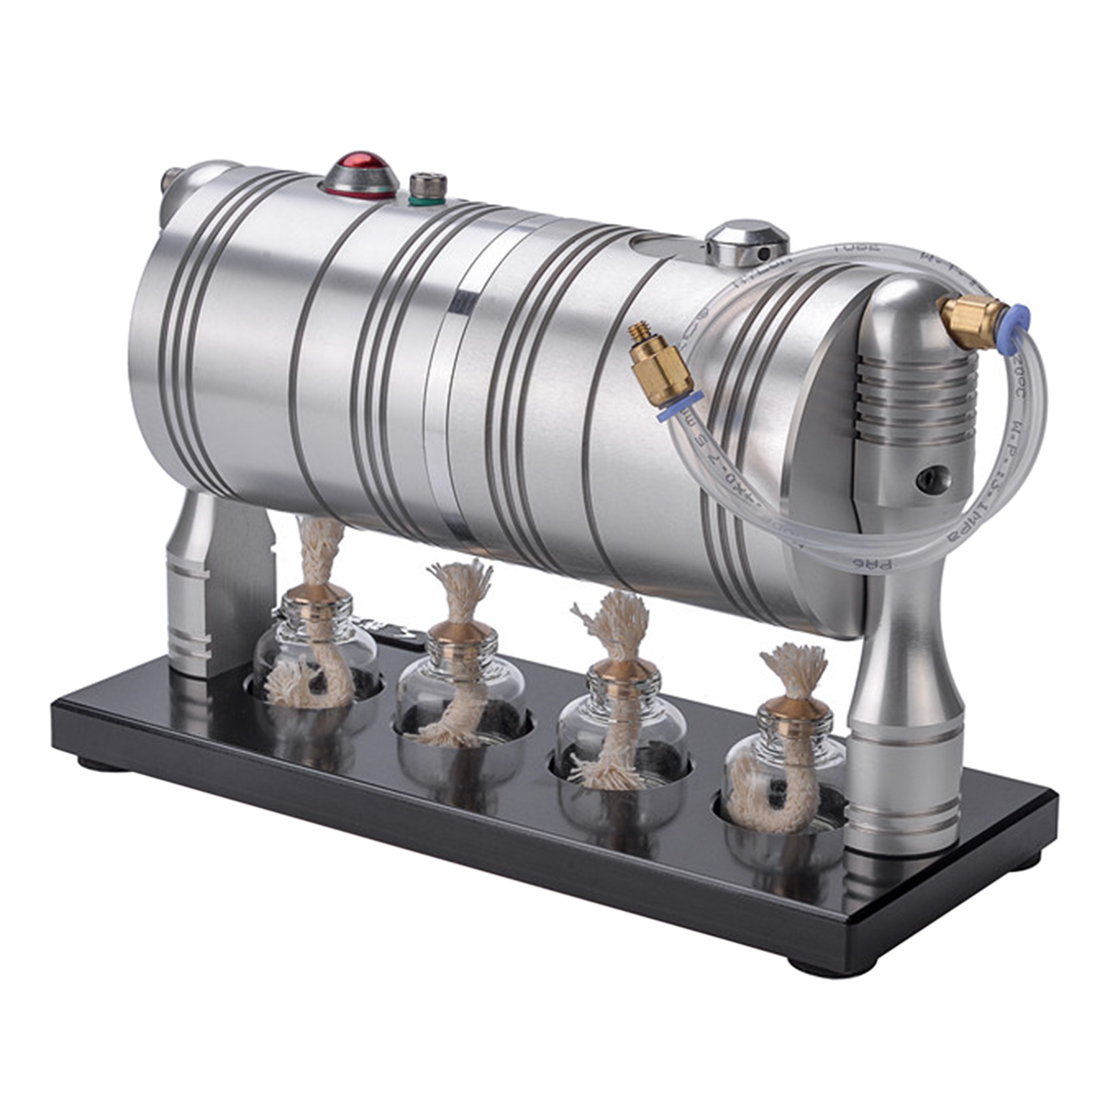 Us 73 54 41 Off Full Metal Startable Retro Steam Engine Motor Model Education Diy Model Toy Gift For Kids Craft Ornament Discovery Alternator In